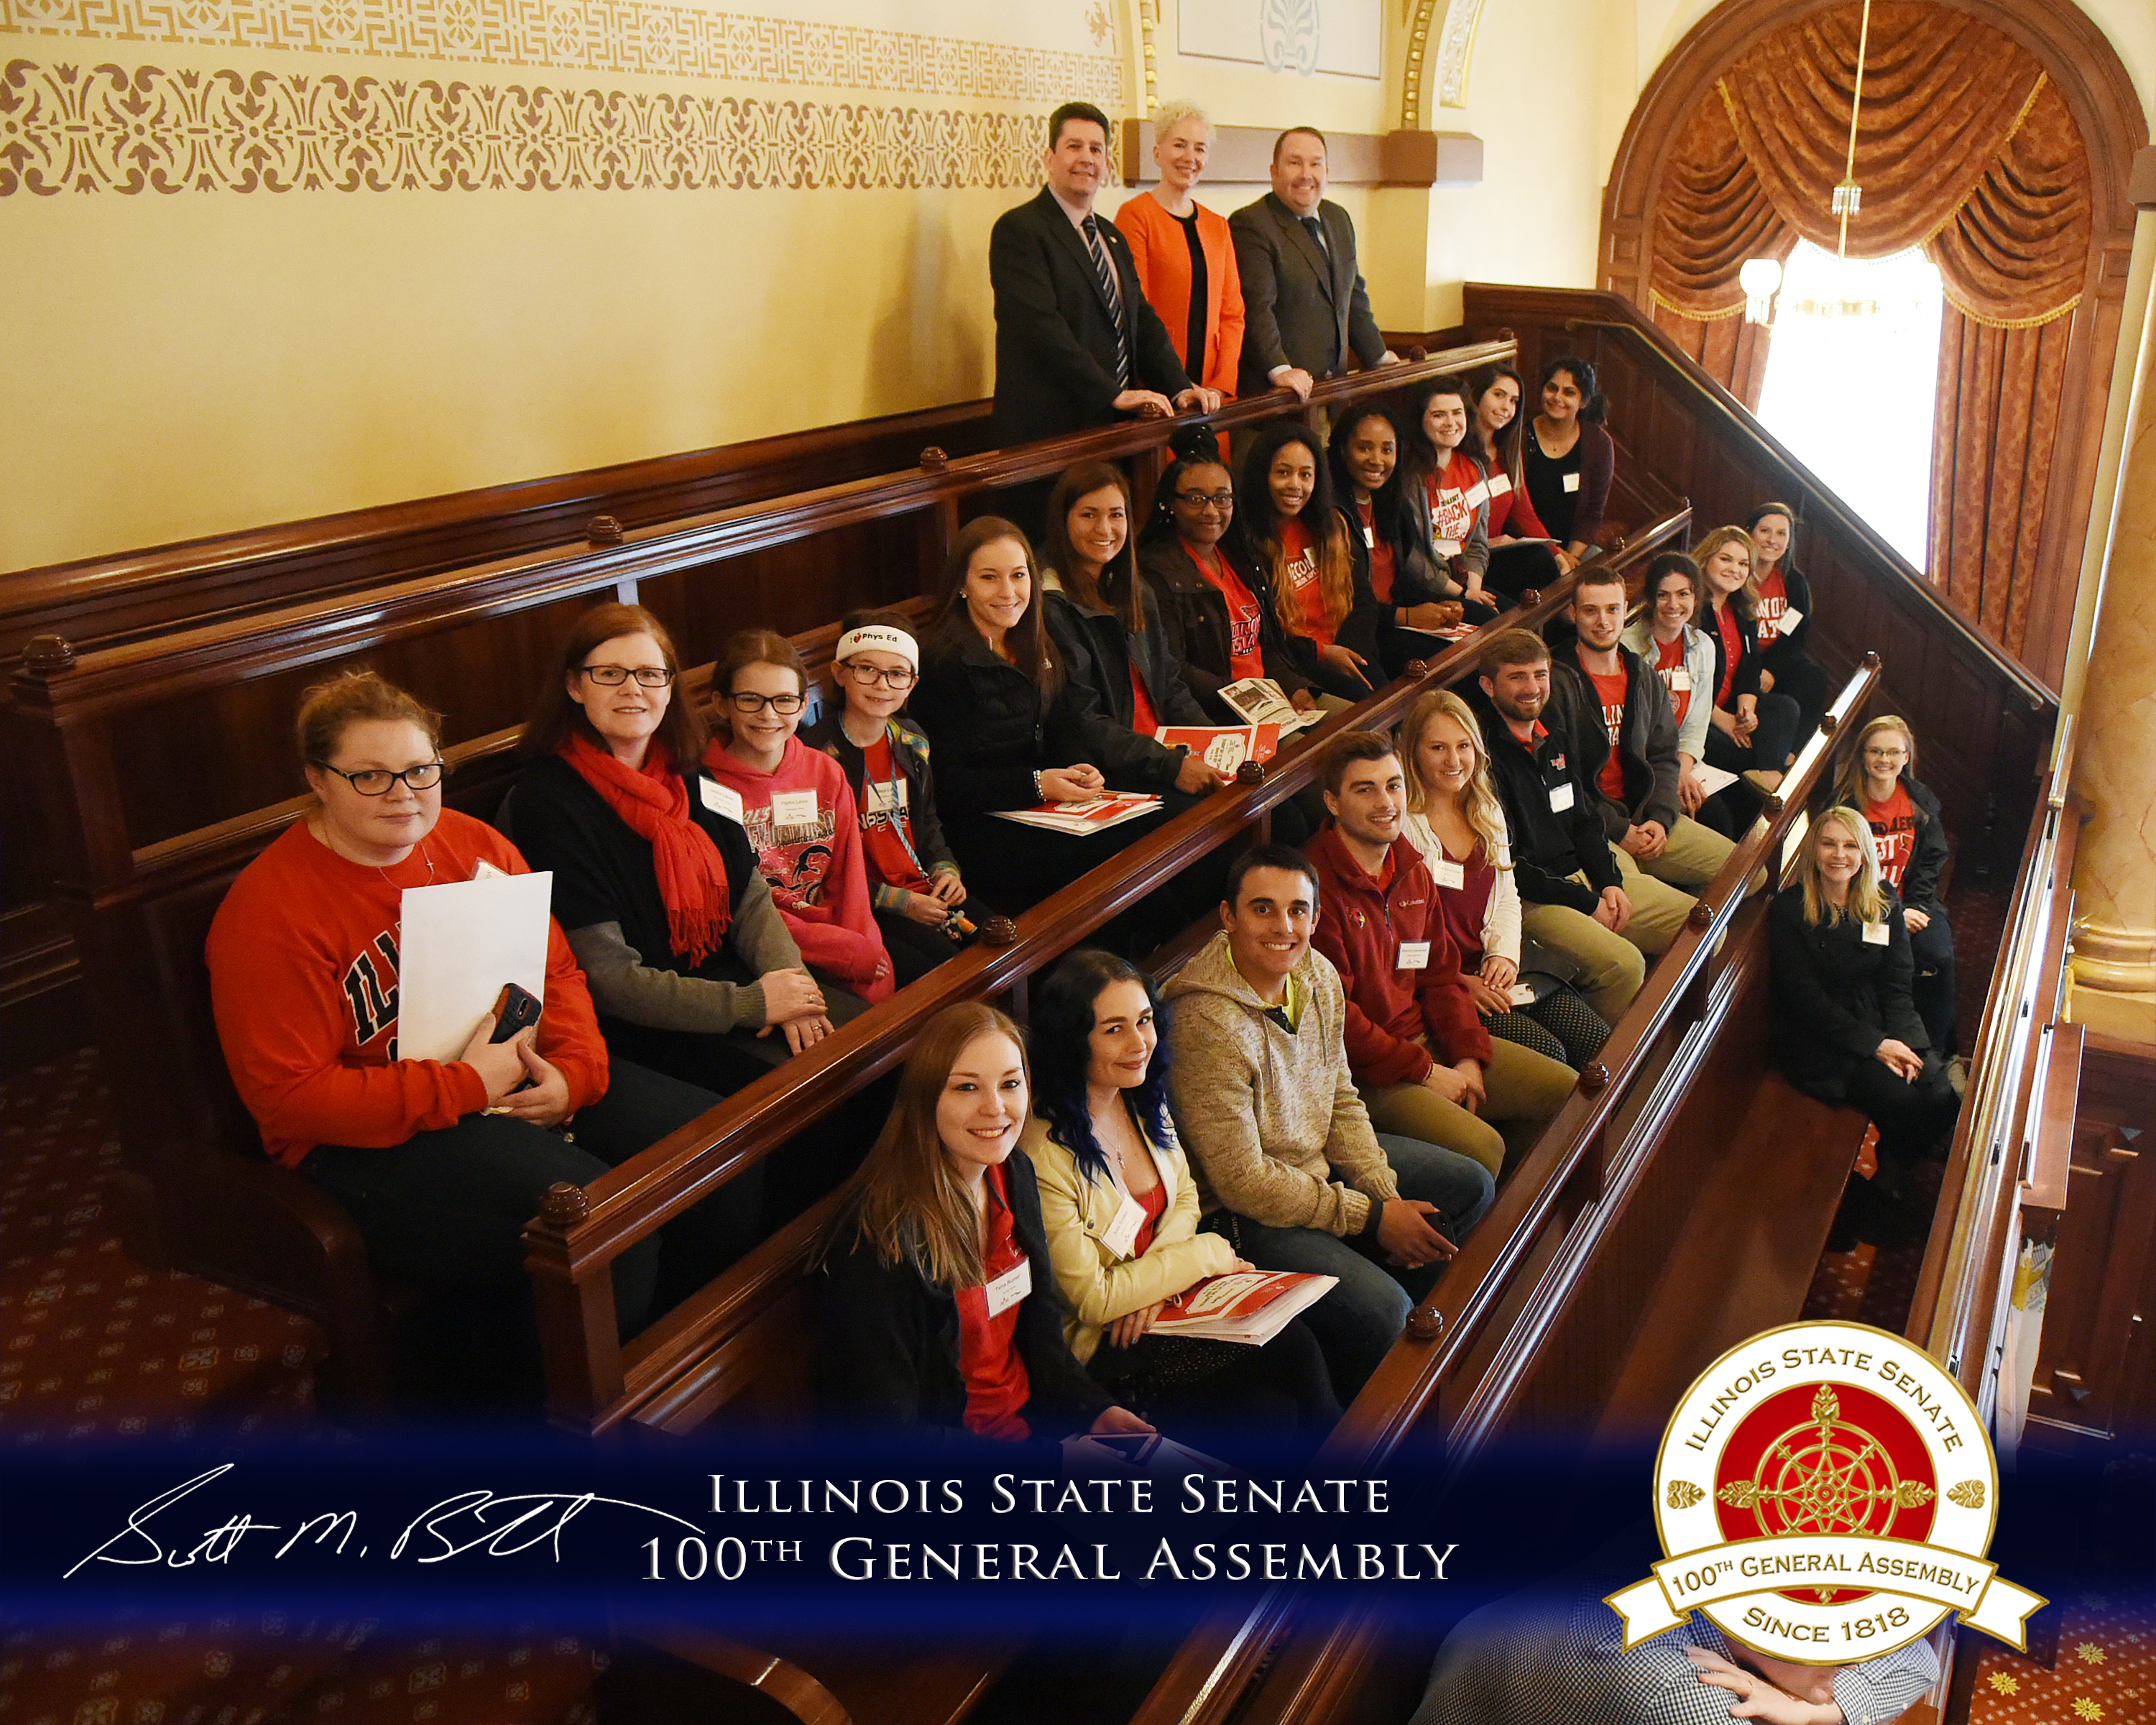 Student_Day_at_the_Capitol_2017_Senate_Gallery_Group_Picture.jpg